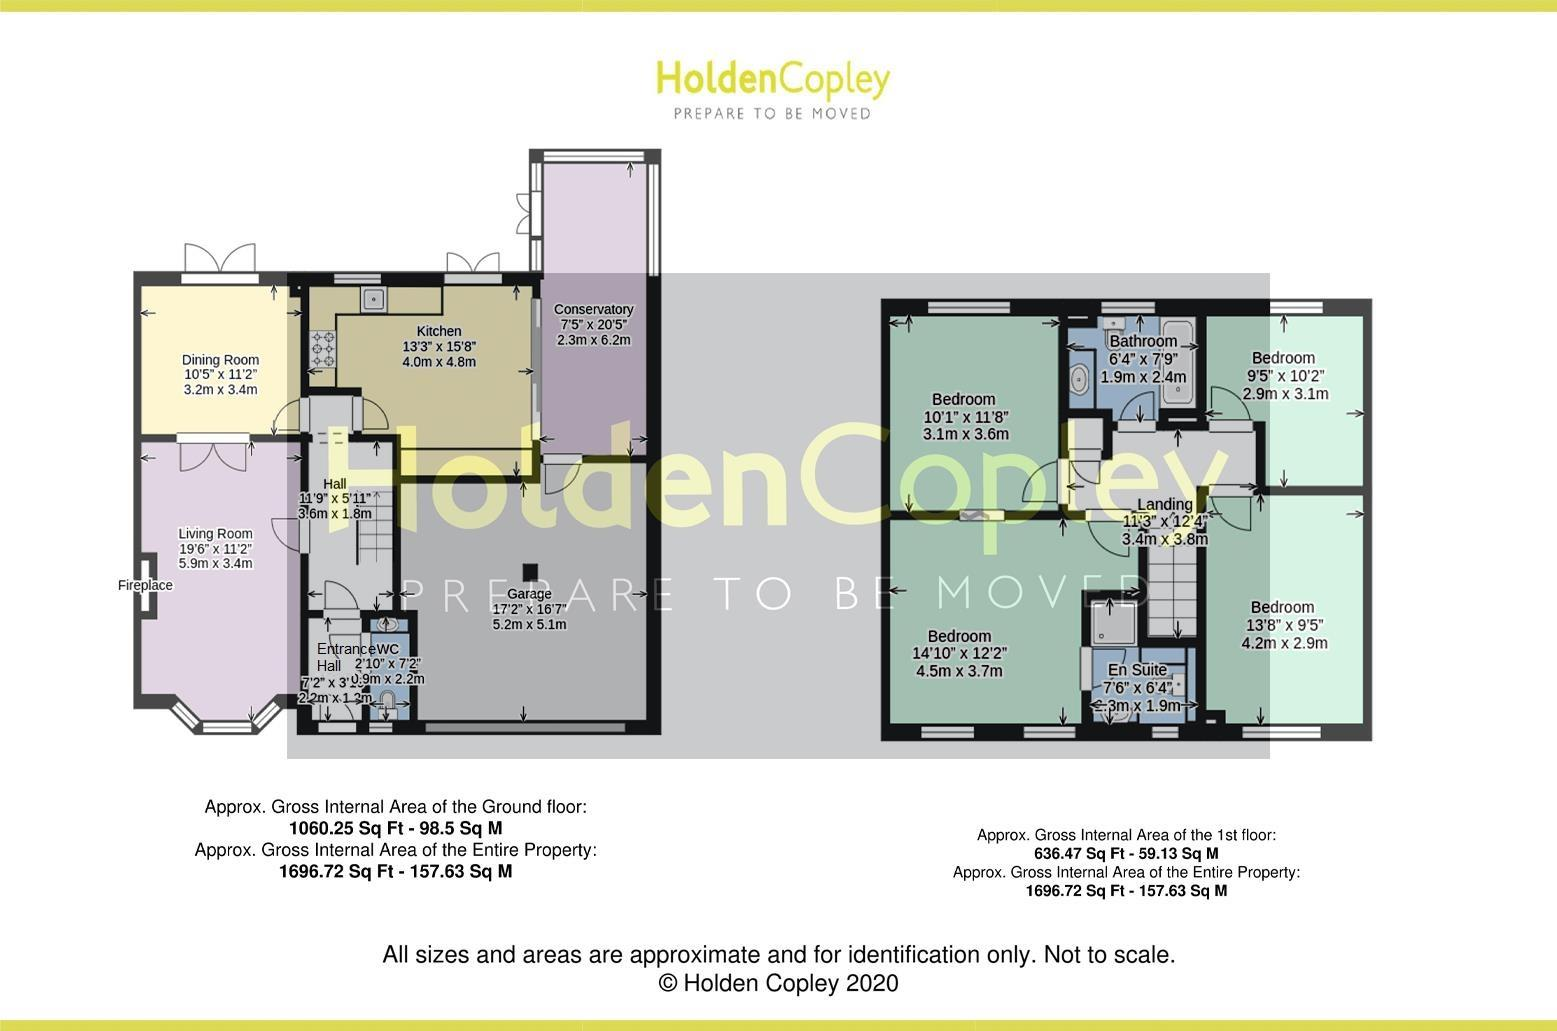 Floorplan for Ozier Holt, Colwick, Nottinghamshire, NG4 2DQ